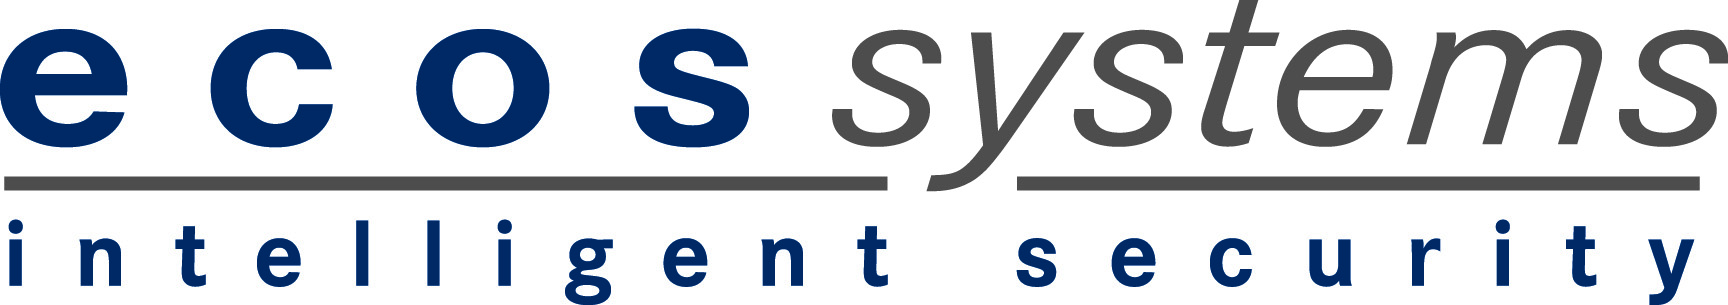 Ecos Systems